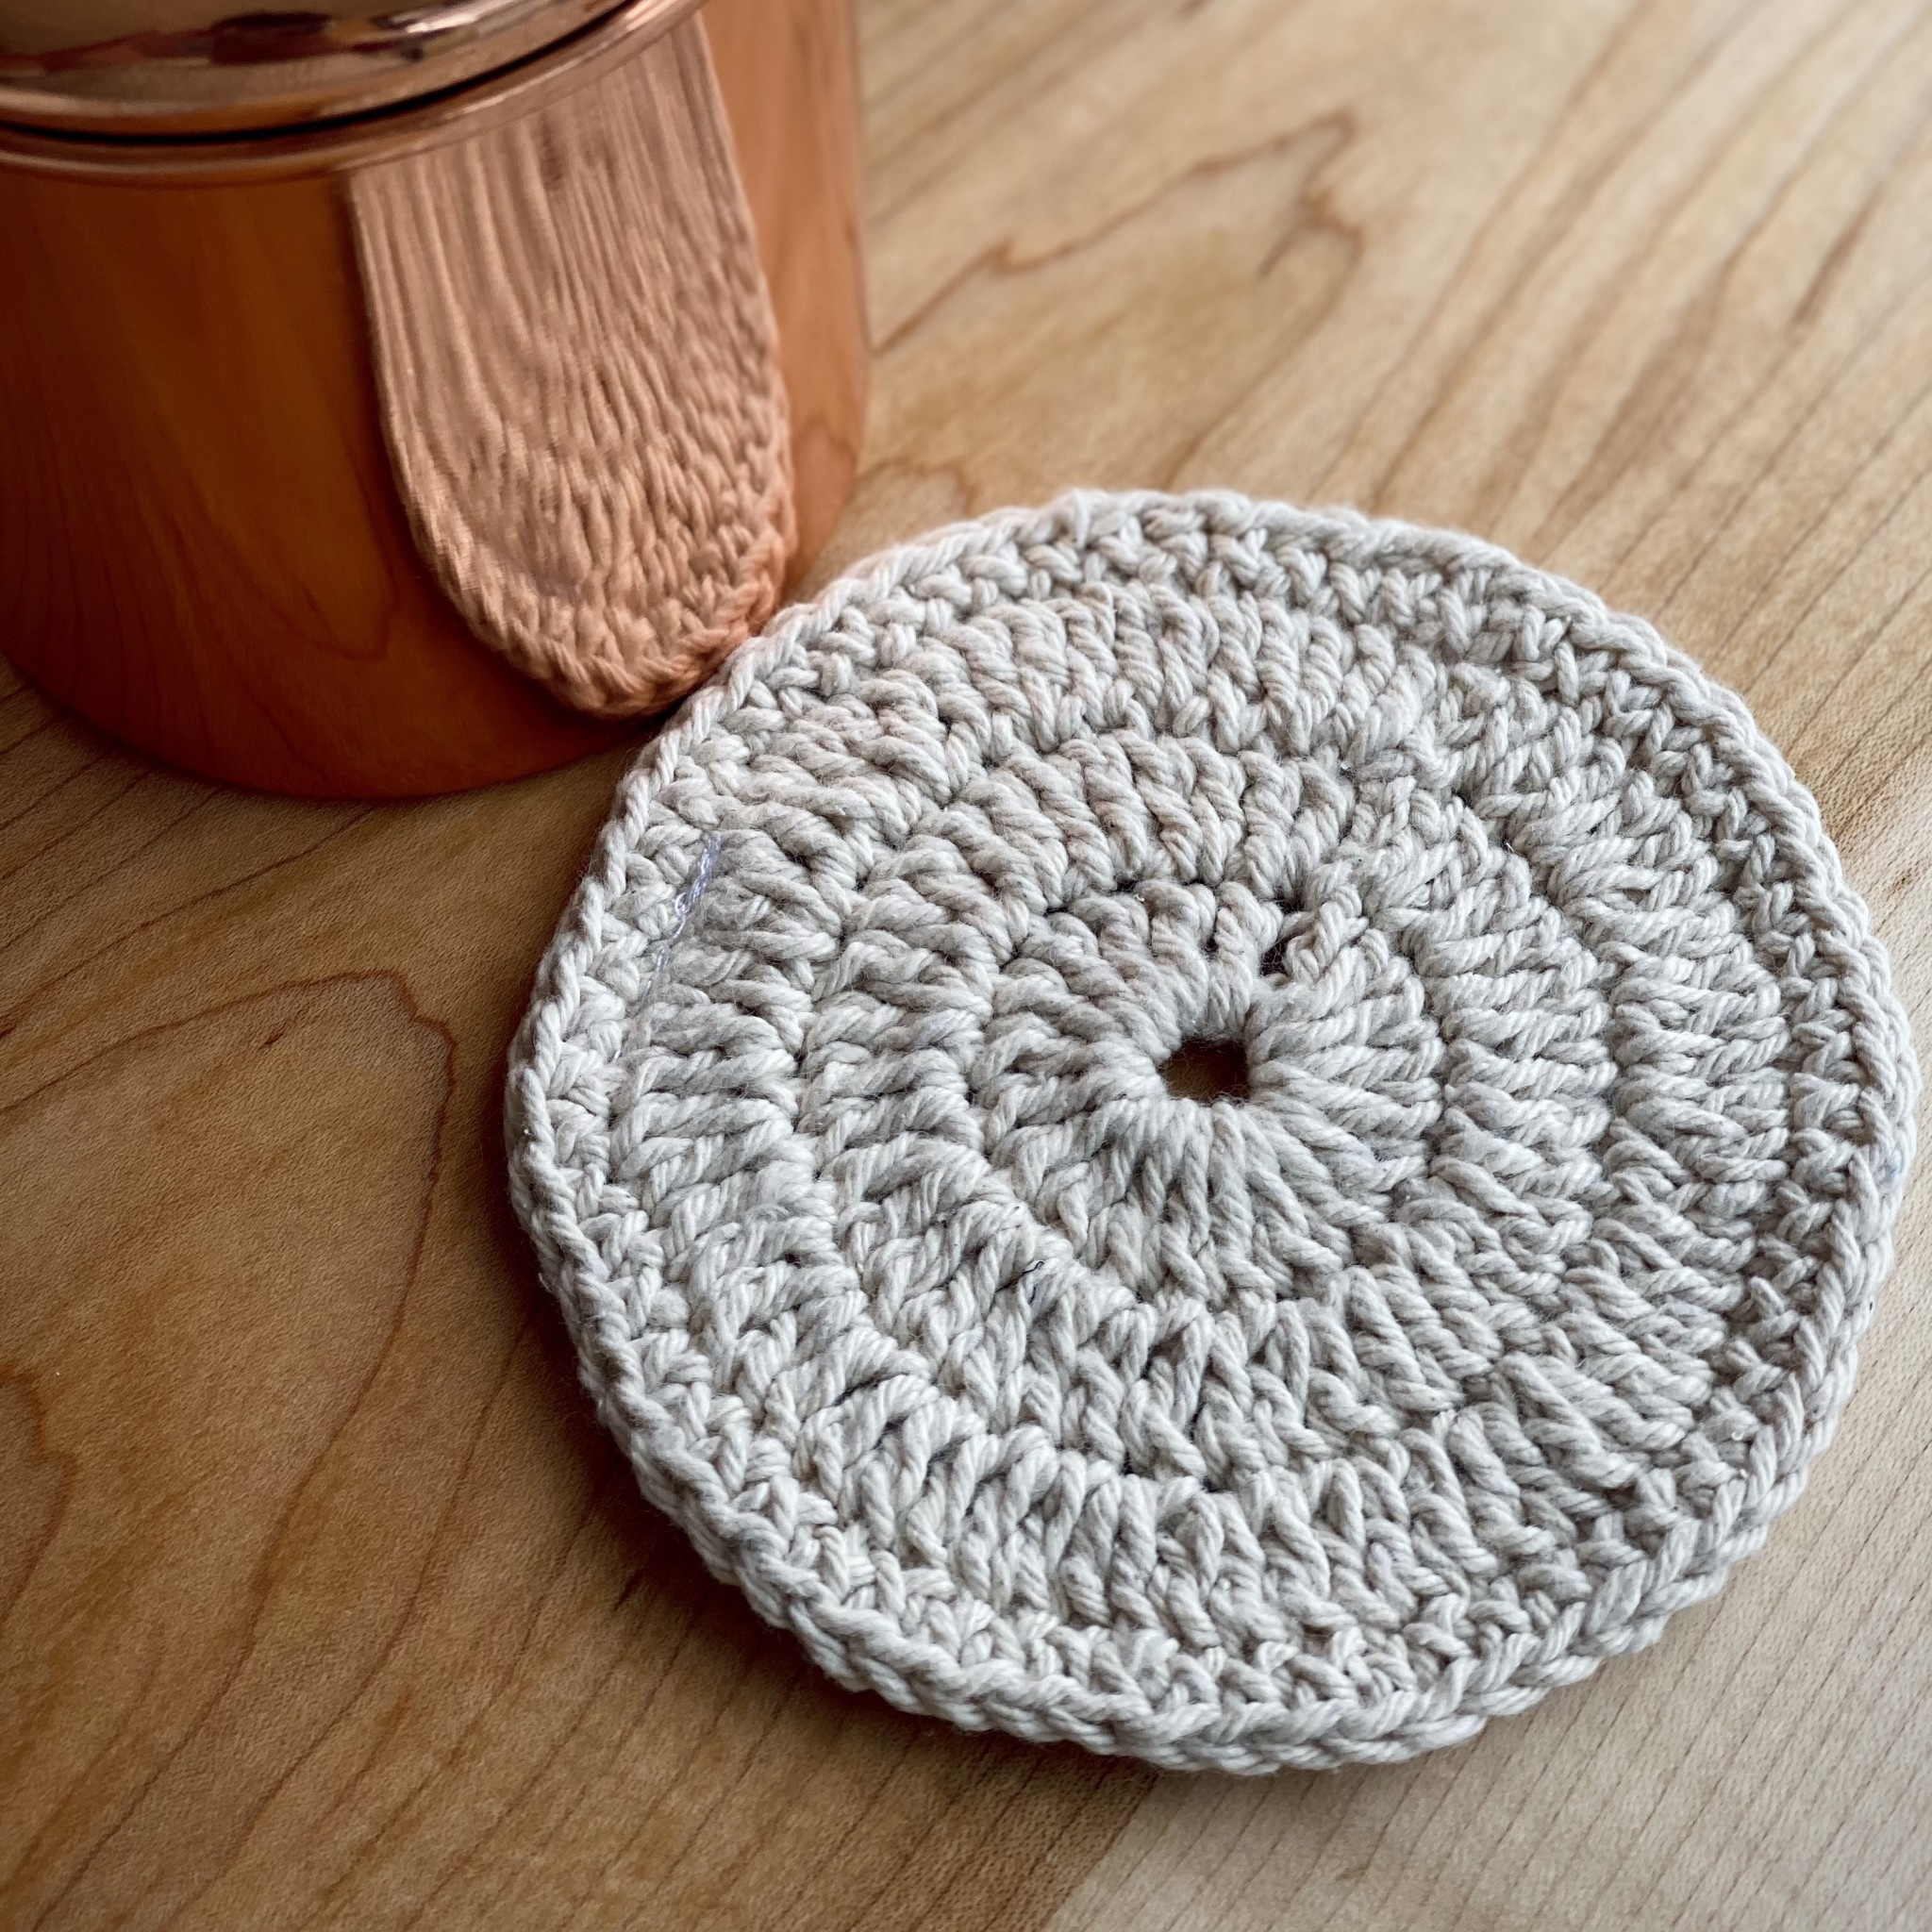 Toockies Hand Knit Organic Cotton Scrubber - Round - Individual